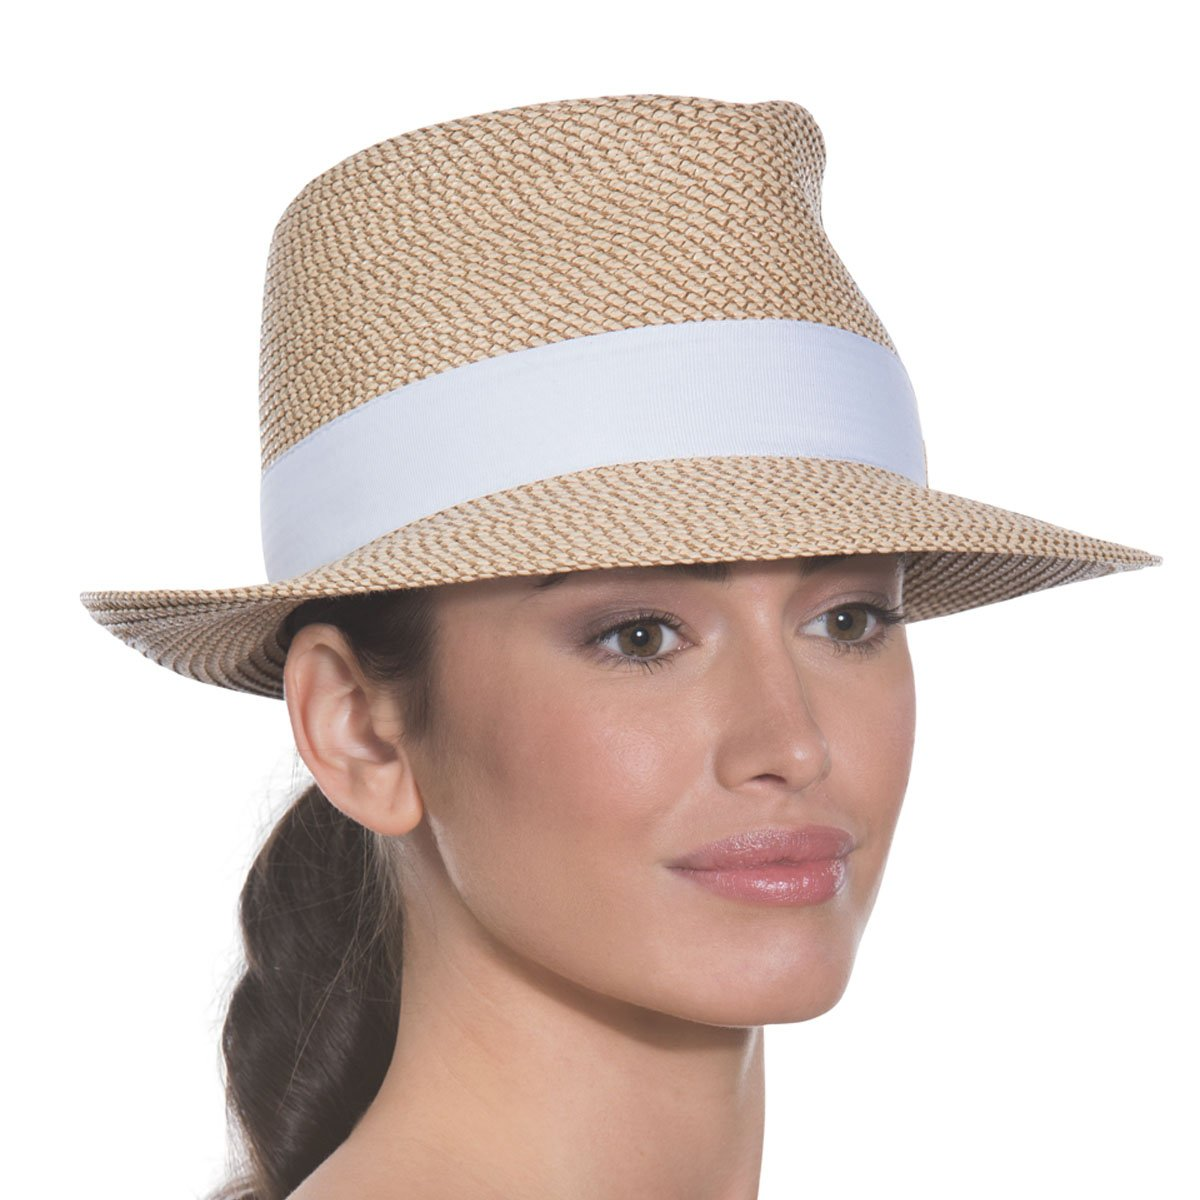 Eric Javits Luxury Fashion Designer Women's Headwear Hat - Squishee Classic- Peanut/White by Eric Javits